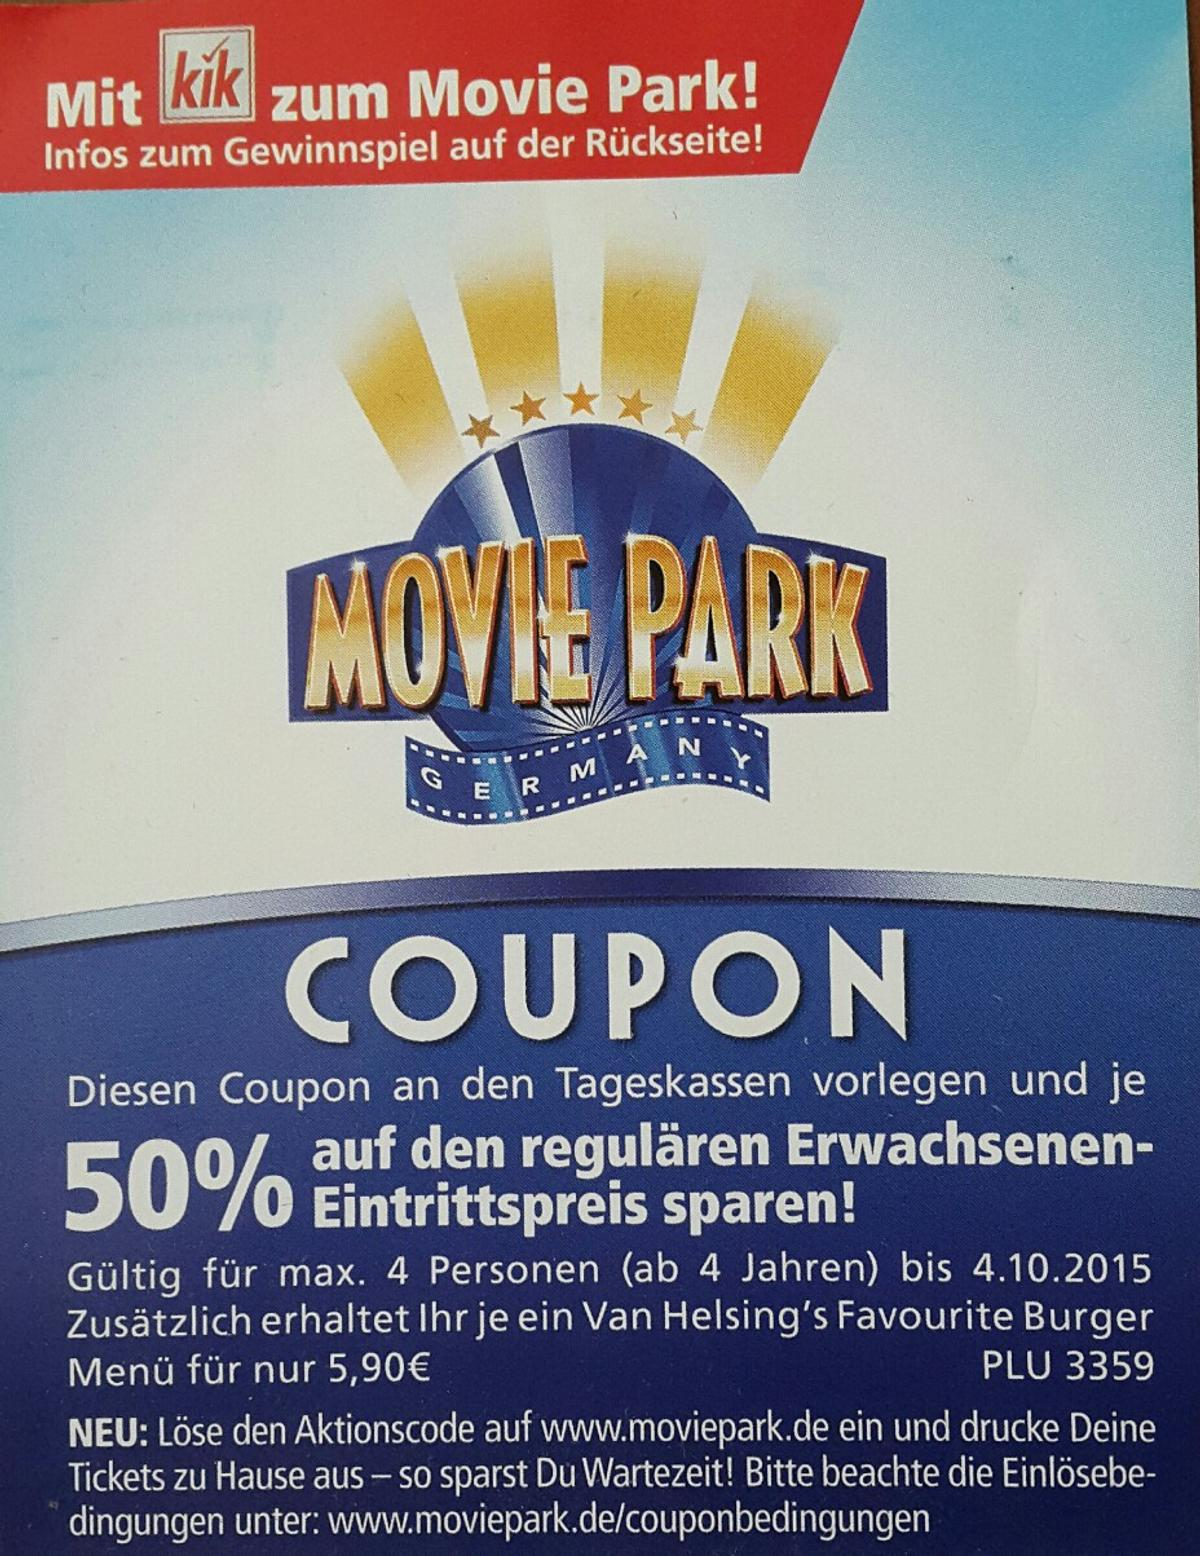 Moviepark Gutschein Gutschein 50 Movie Park